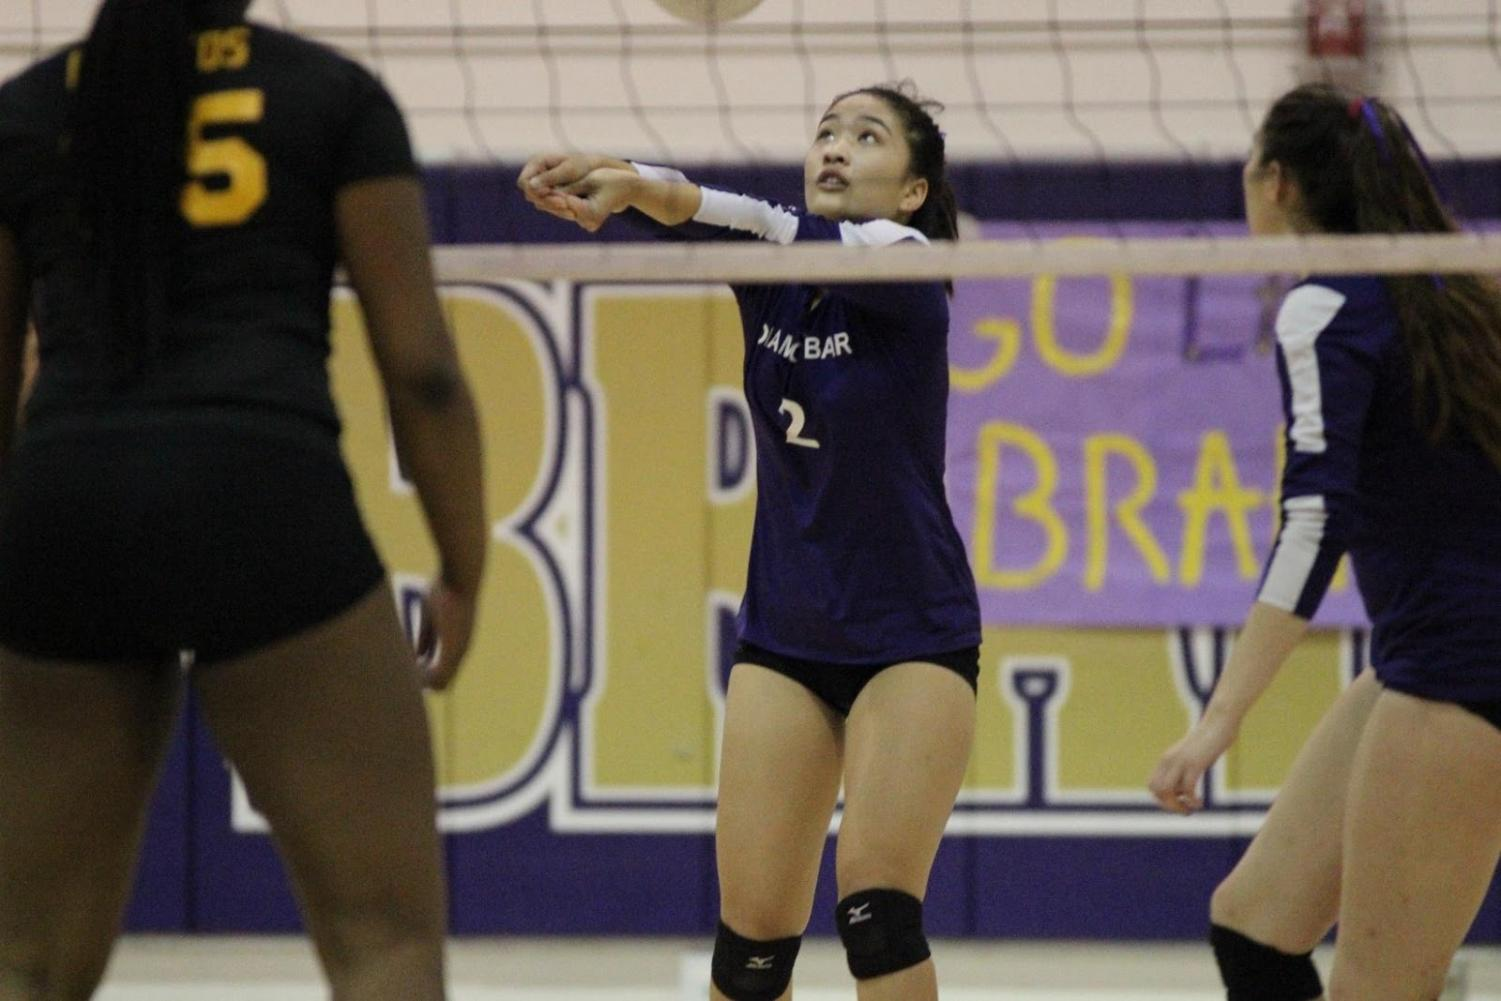 Senior Hannah Wangsa returns a volley against Cerritos on Nov. 2.